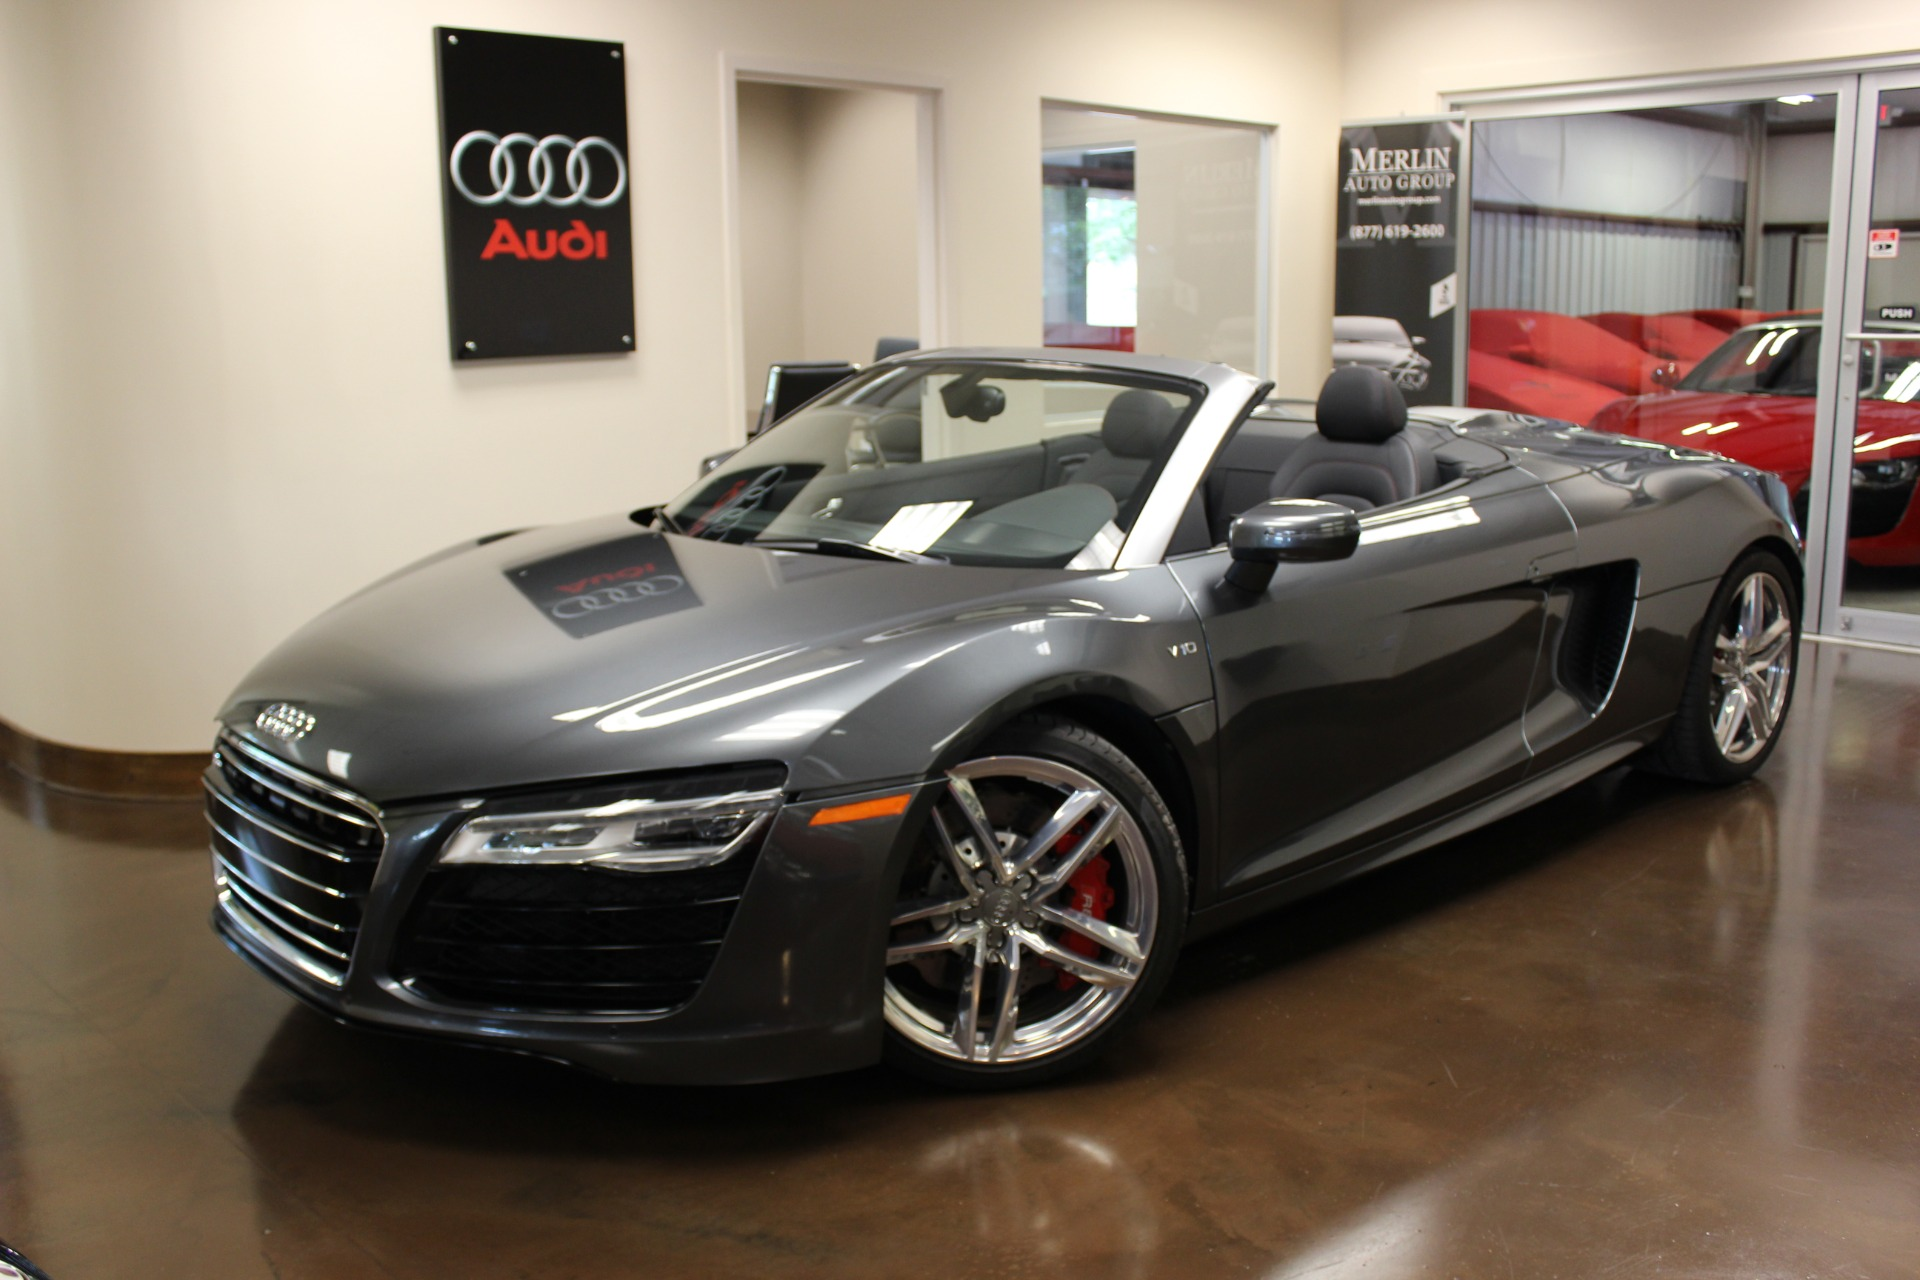 used 2015 audi r8 v10 convertible automatic manual navigation leather used audi r8 for. Black Bedroom Furniture Sets. Home Design Ideas